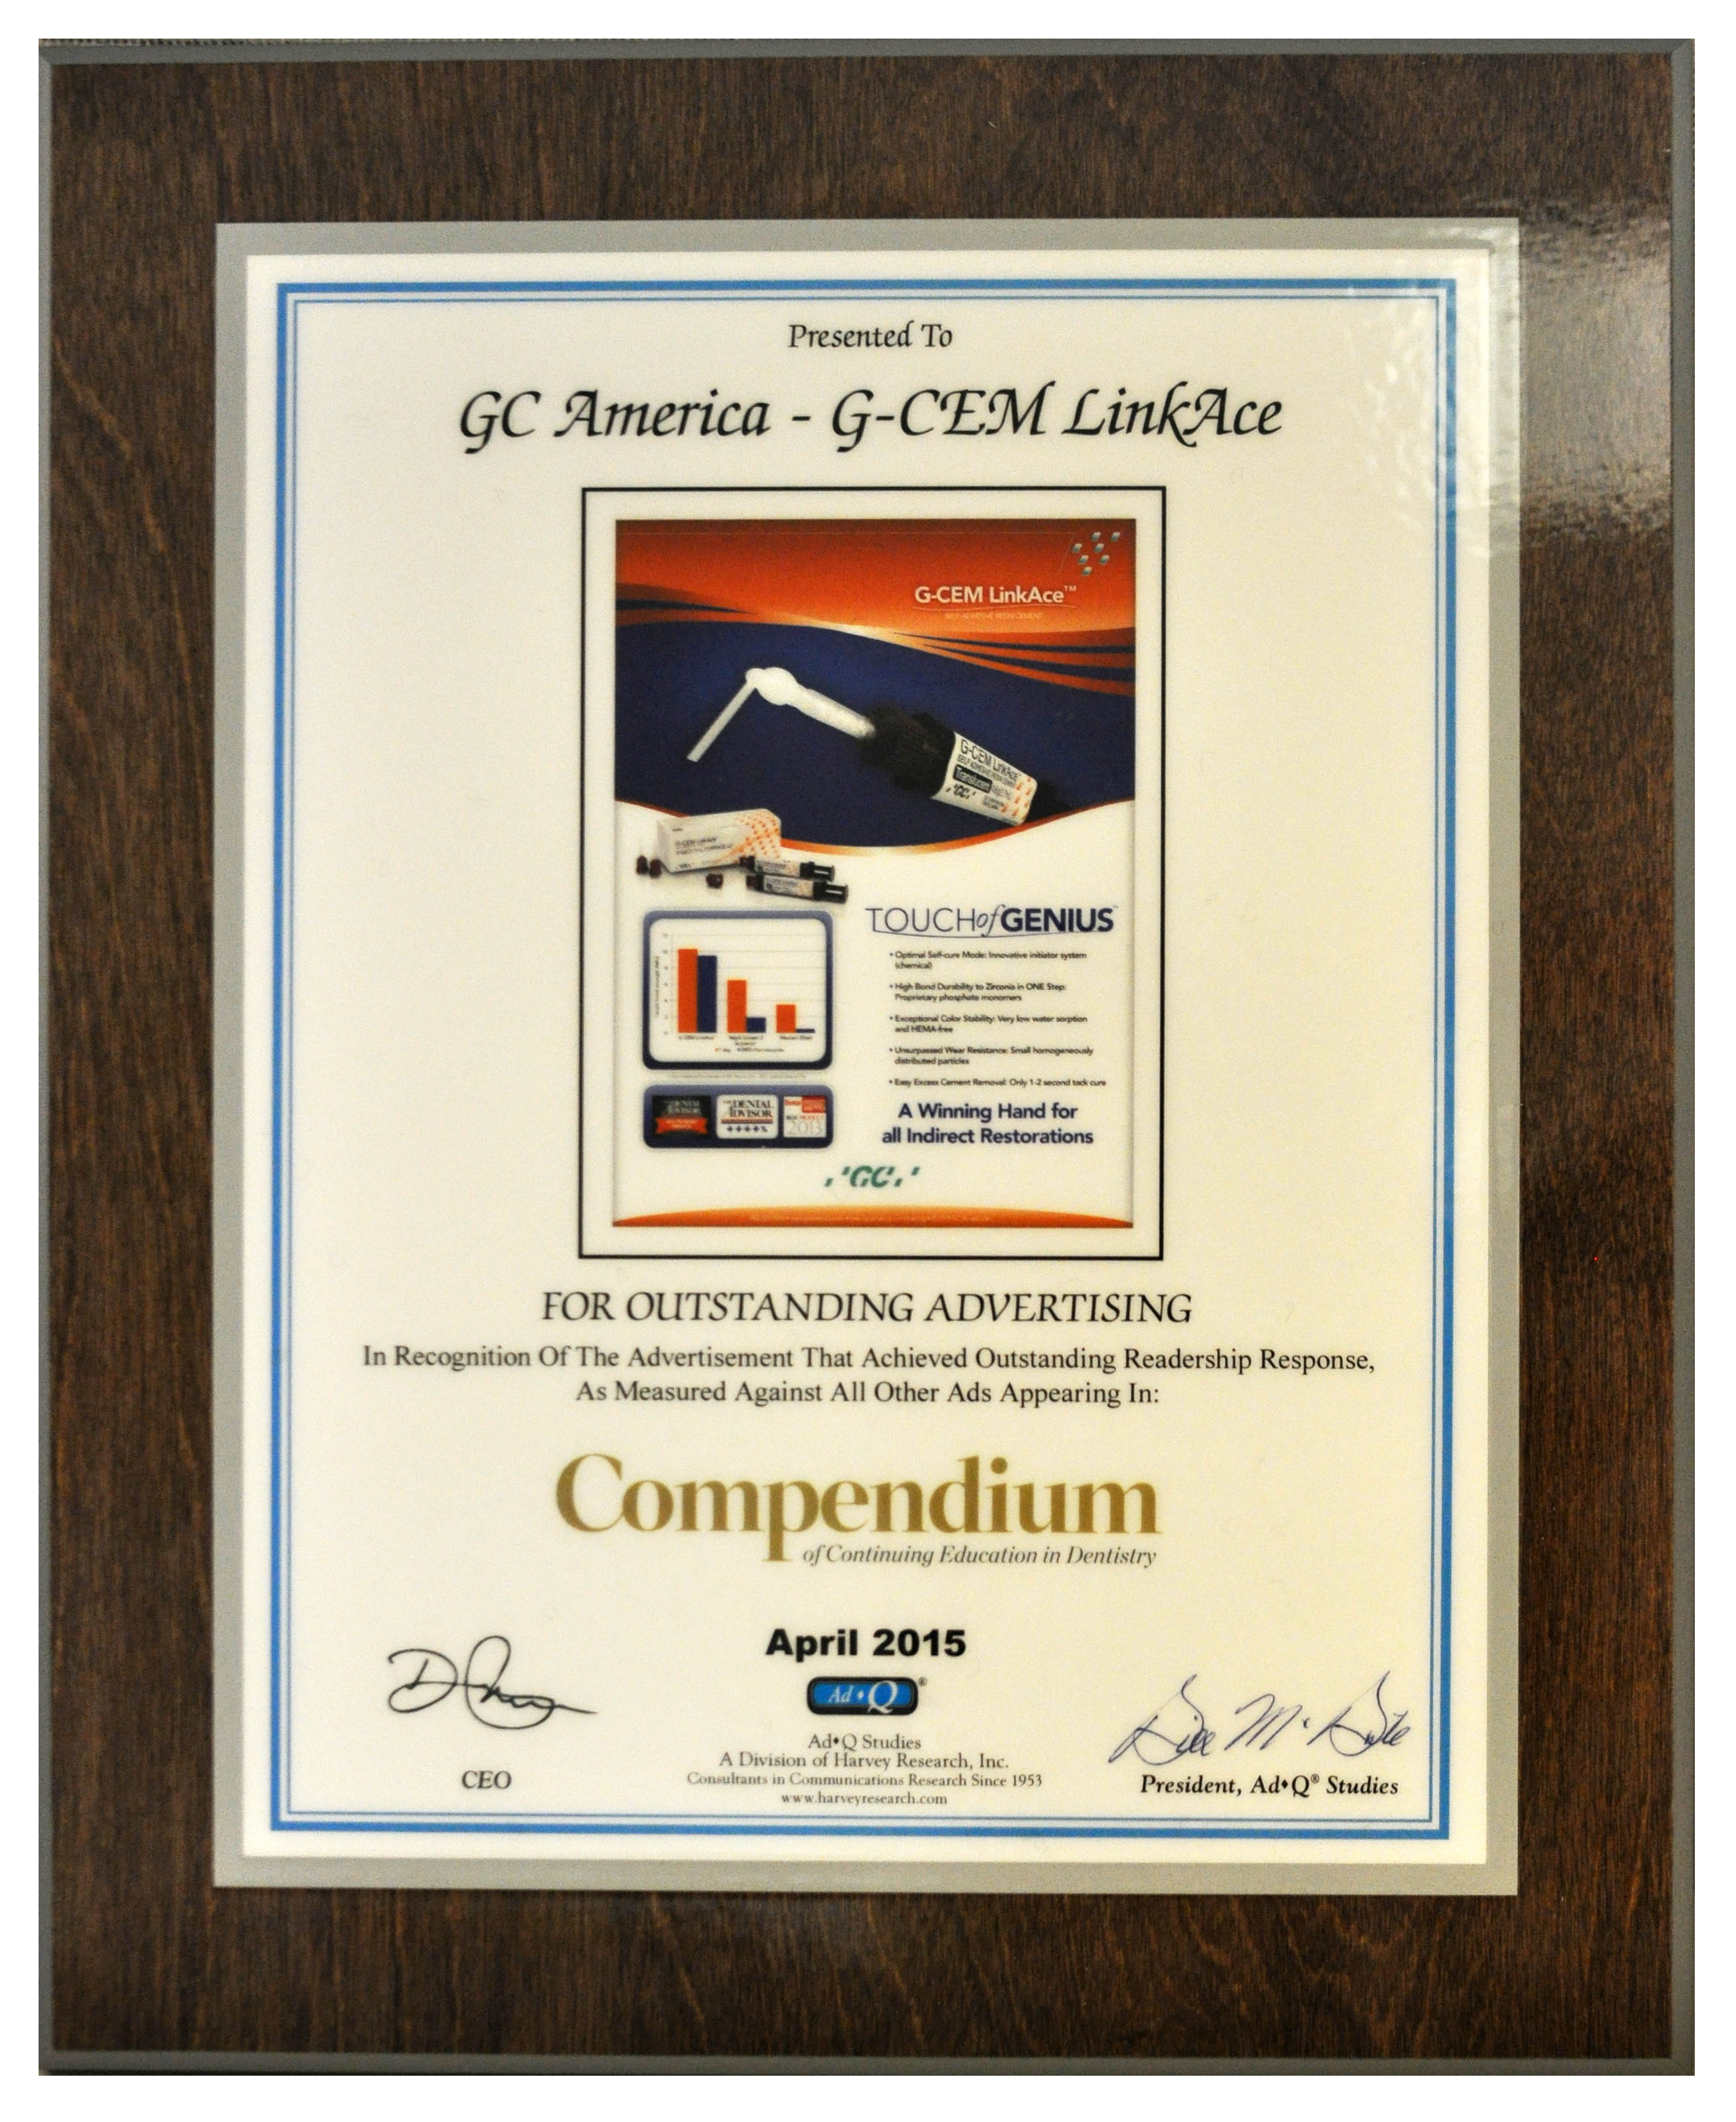 Gc america company news outstanding advertising the ad featuring g cem linkace received the award in recognition of the advertisement that achieved outstanding readership xflitez Gallery